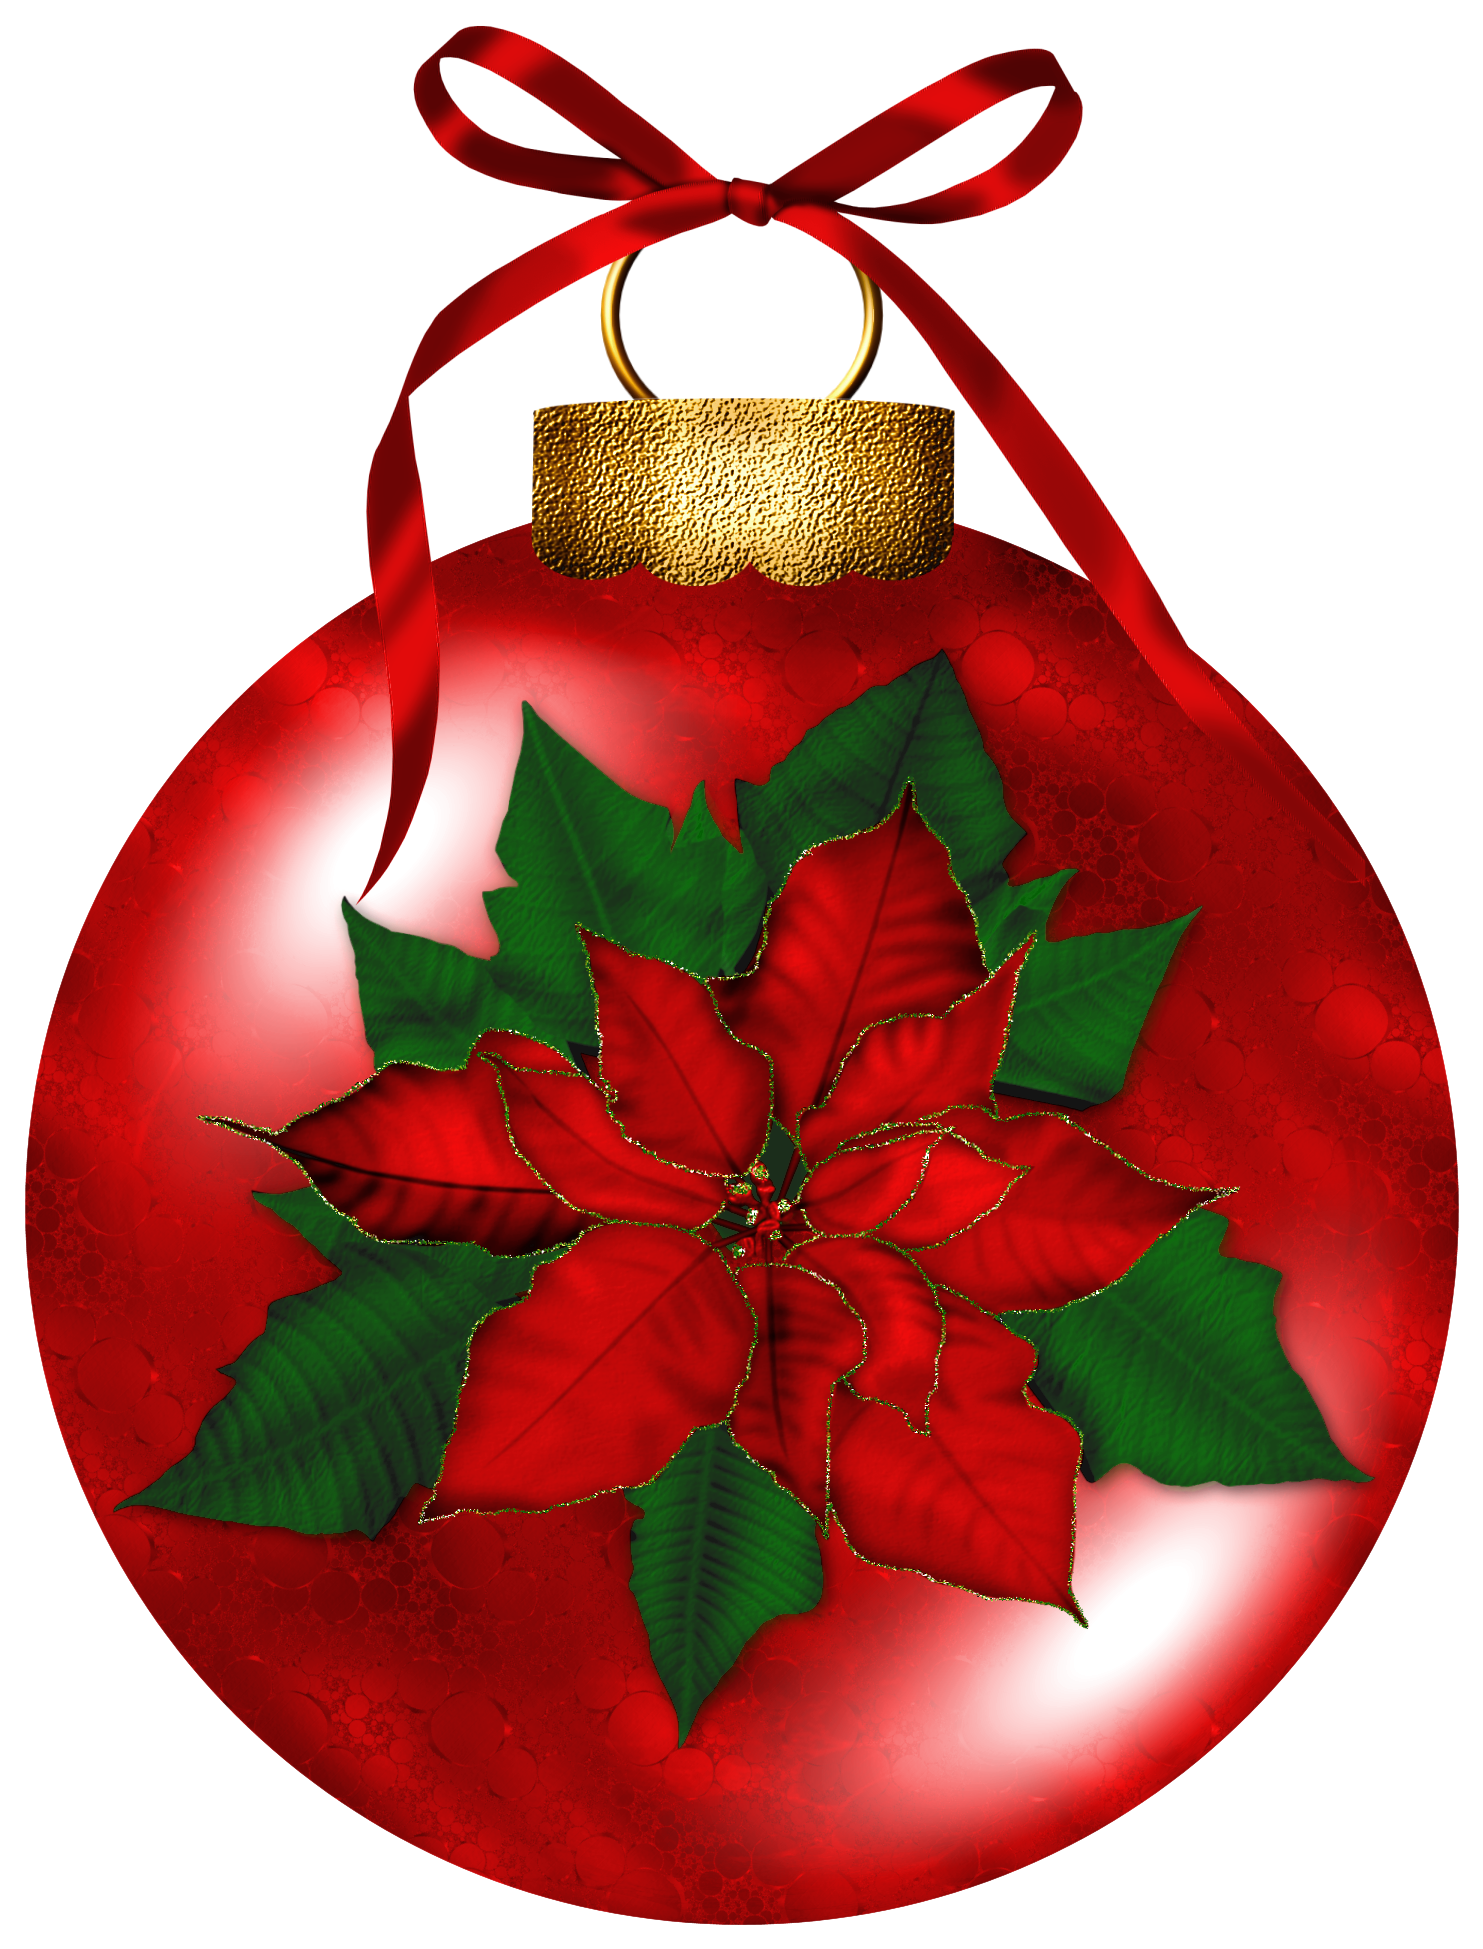 Poinsettia clipart #5, Download drawings